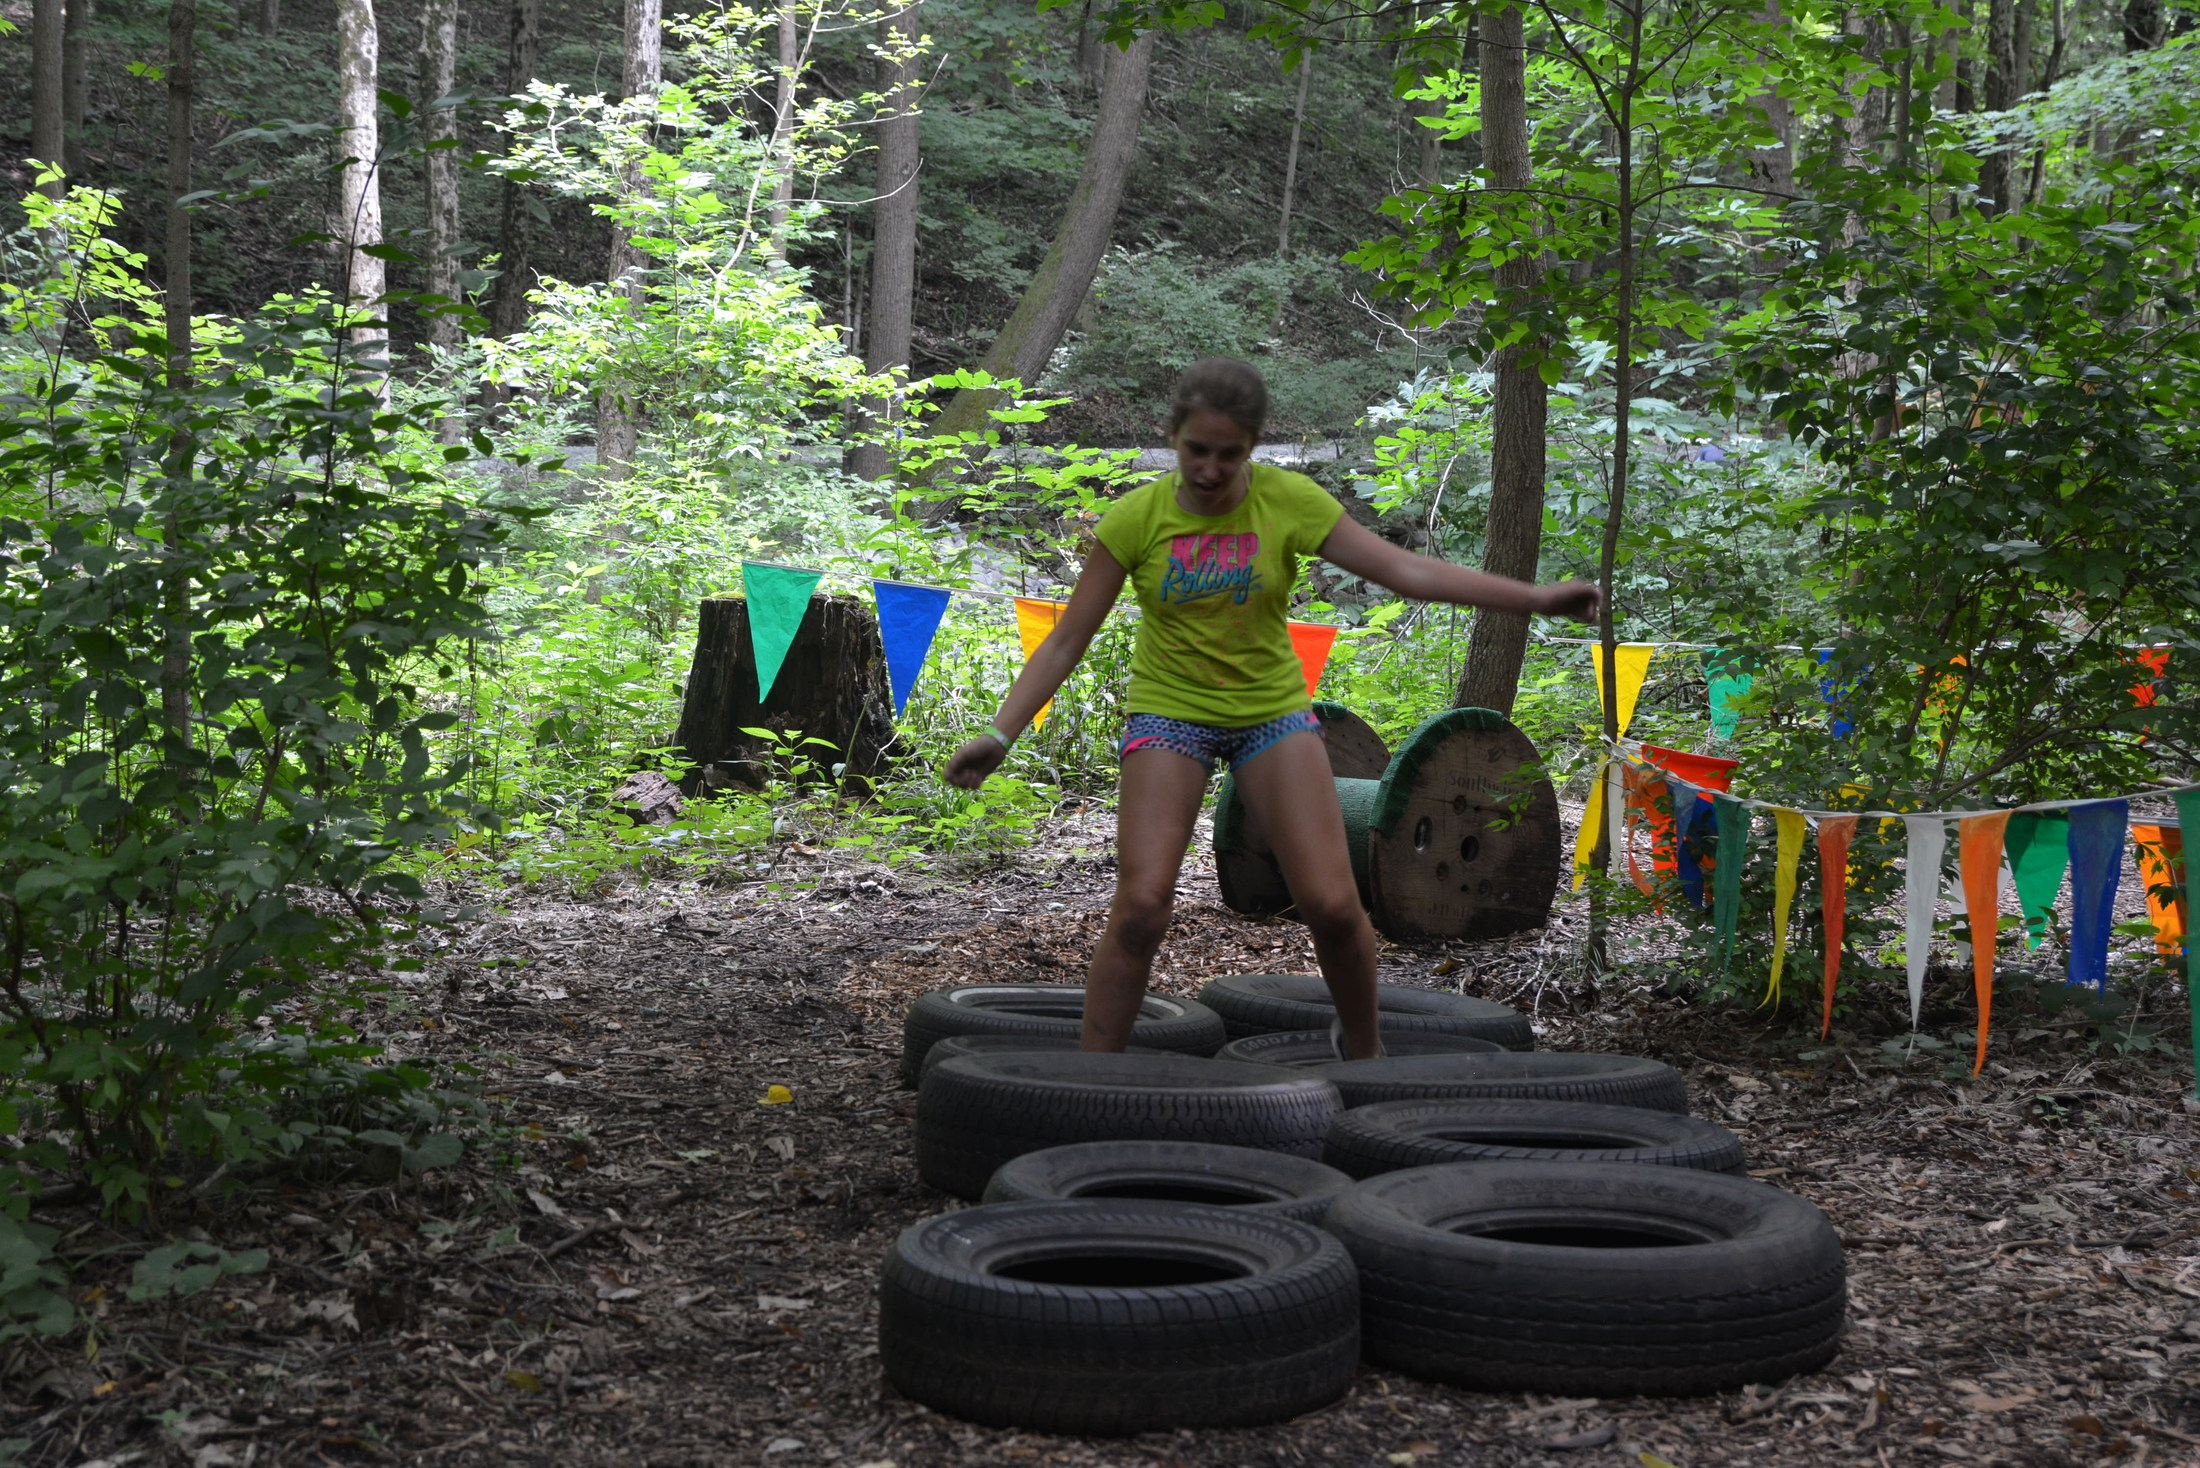 Female student jumping through tires at Camp Willard